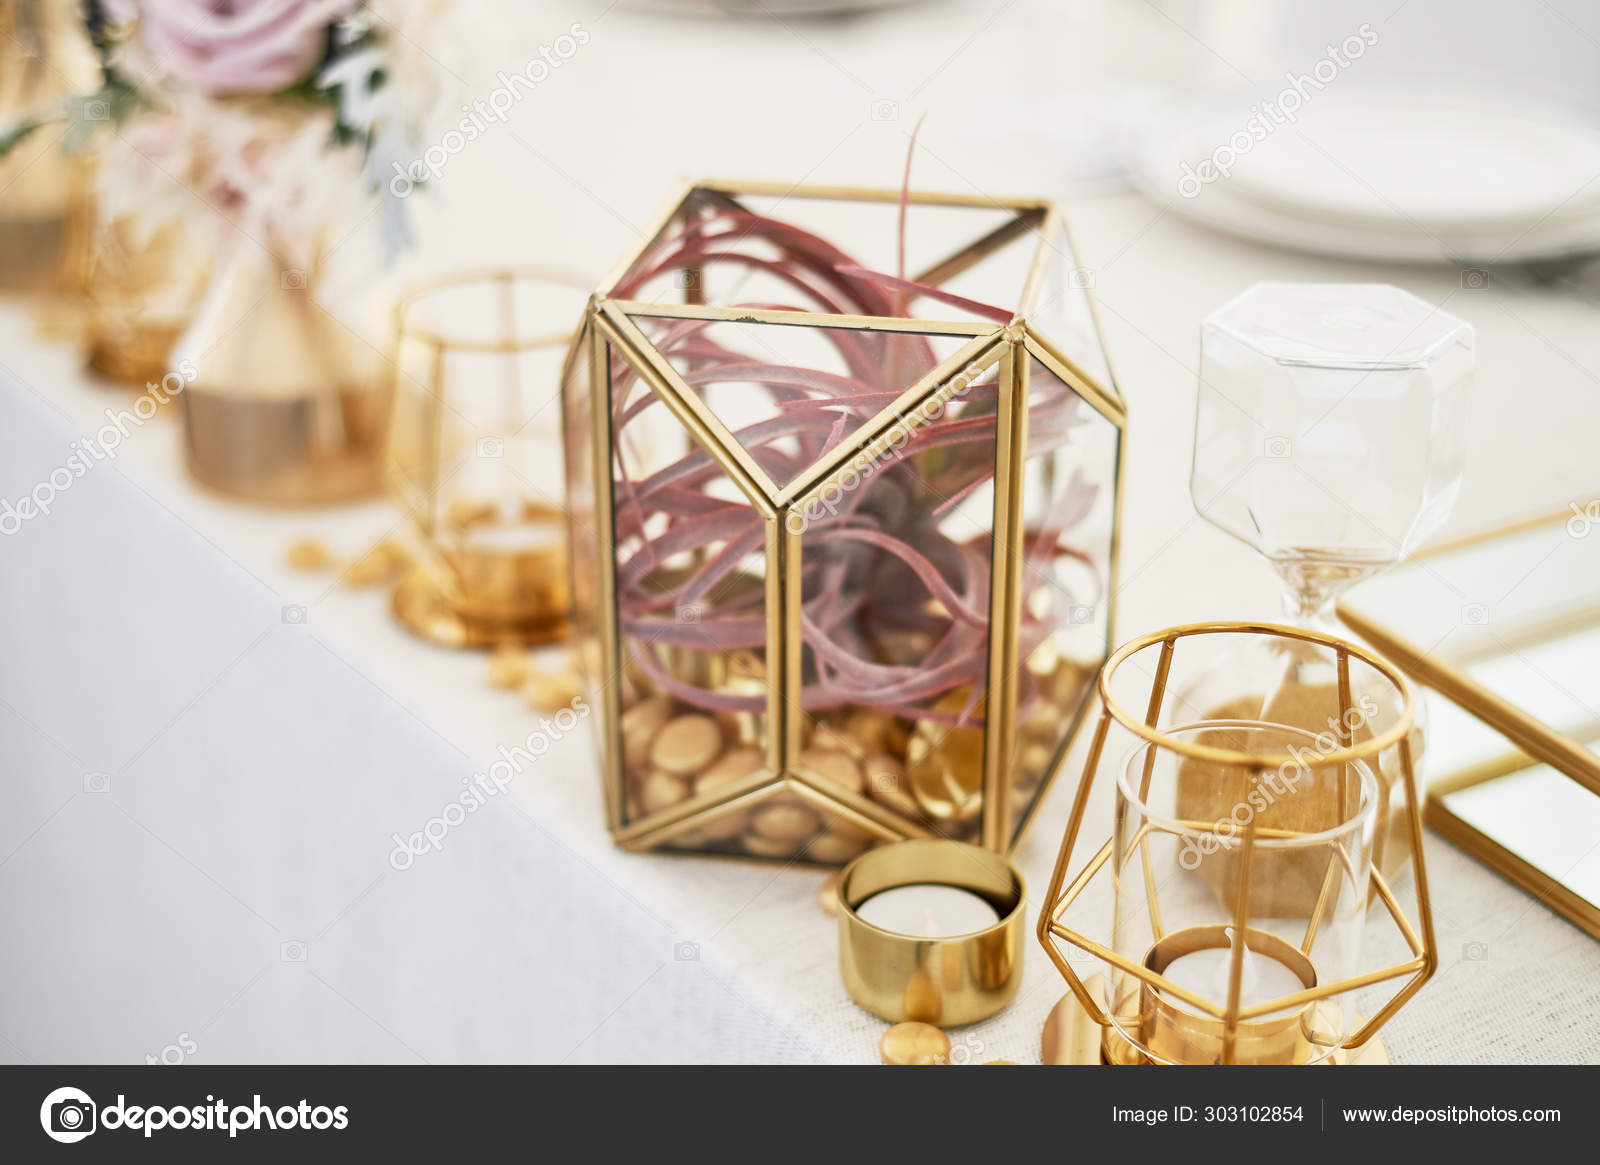 Wedding Decoration In Boho Style Light Colors In The Tent Wedding Table Decorated With Gold Geometric Candlesticks Simple Form Stock Photo C Gf2002 Mail Ru 303102854